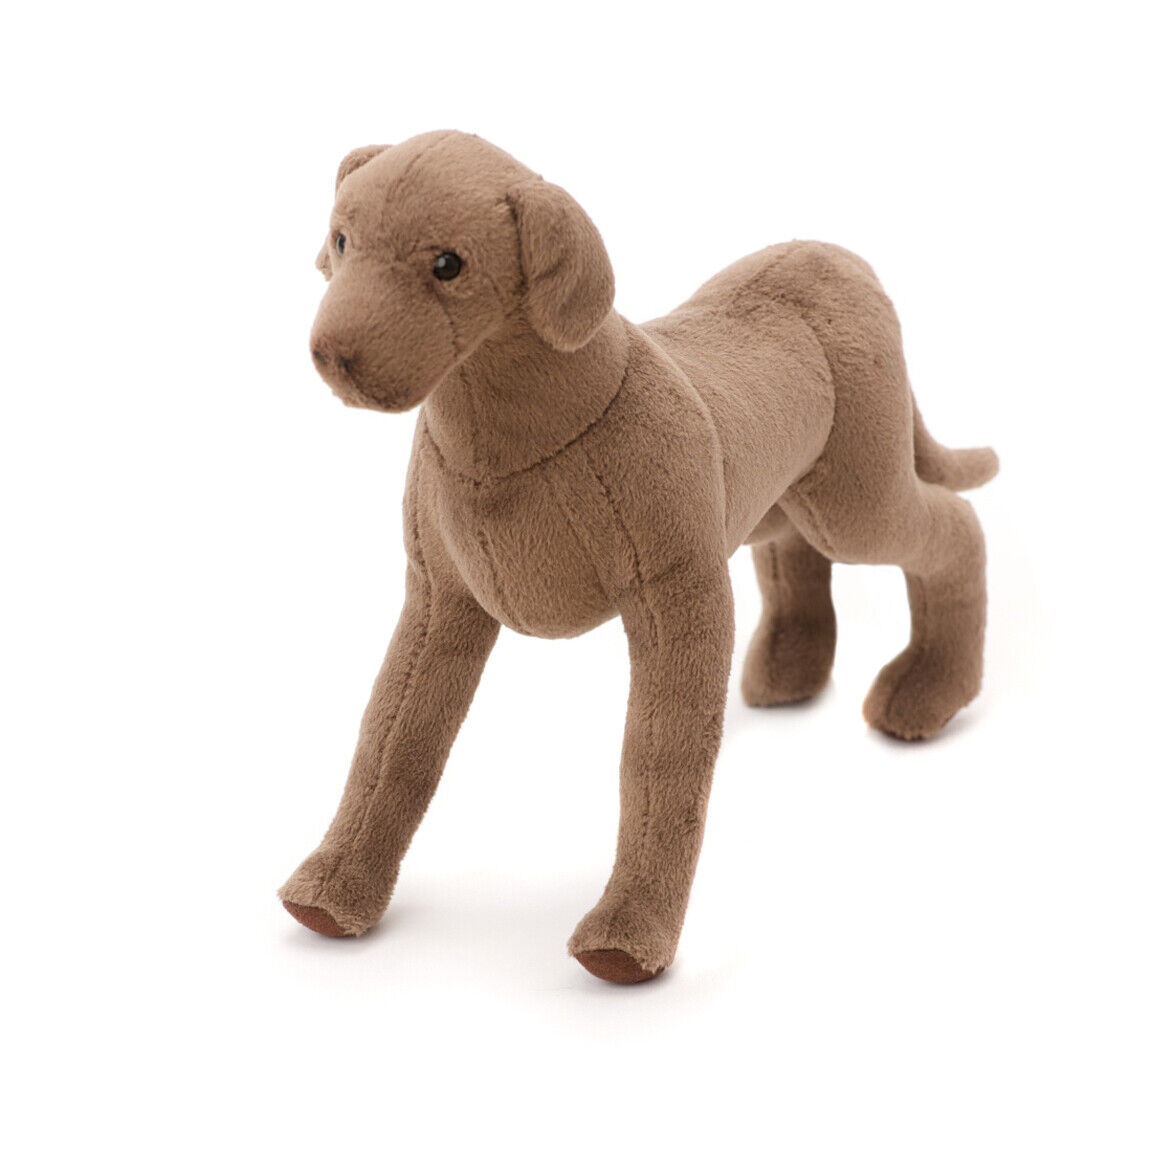 Great Dane miniature collectable plush soft toy - Kosen   Kösen - 6010 - 22cm